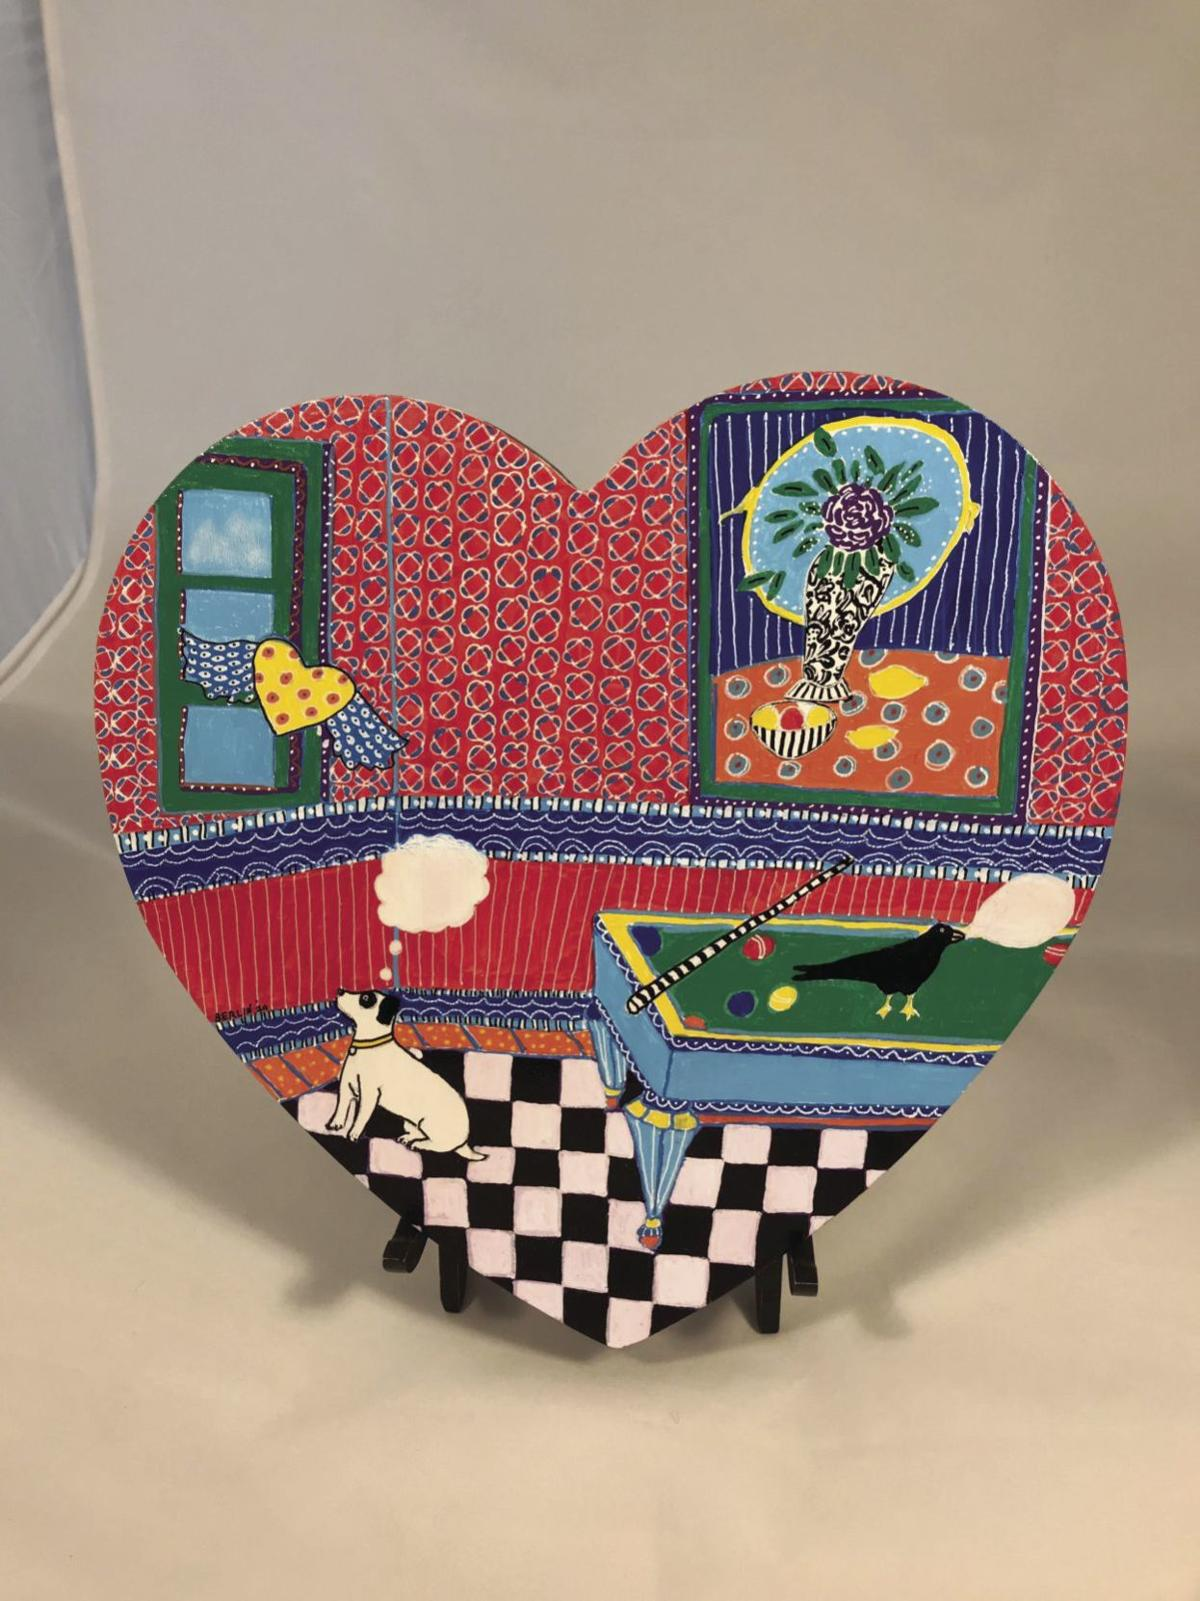 Works of Heart auction Feb. 15